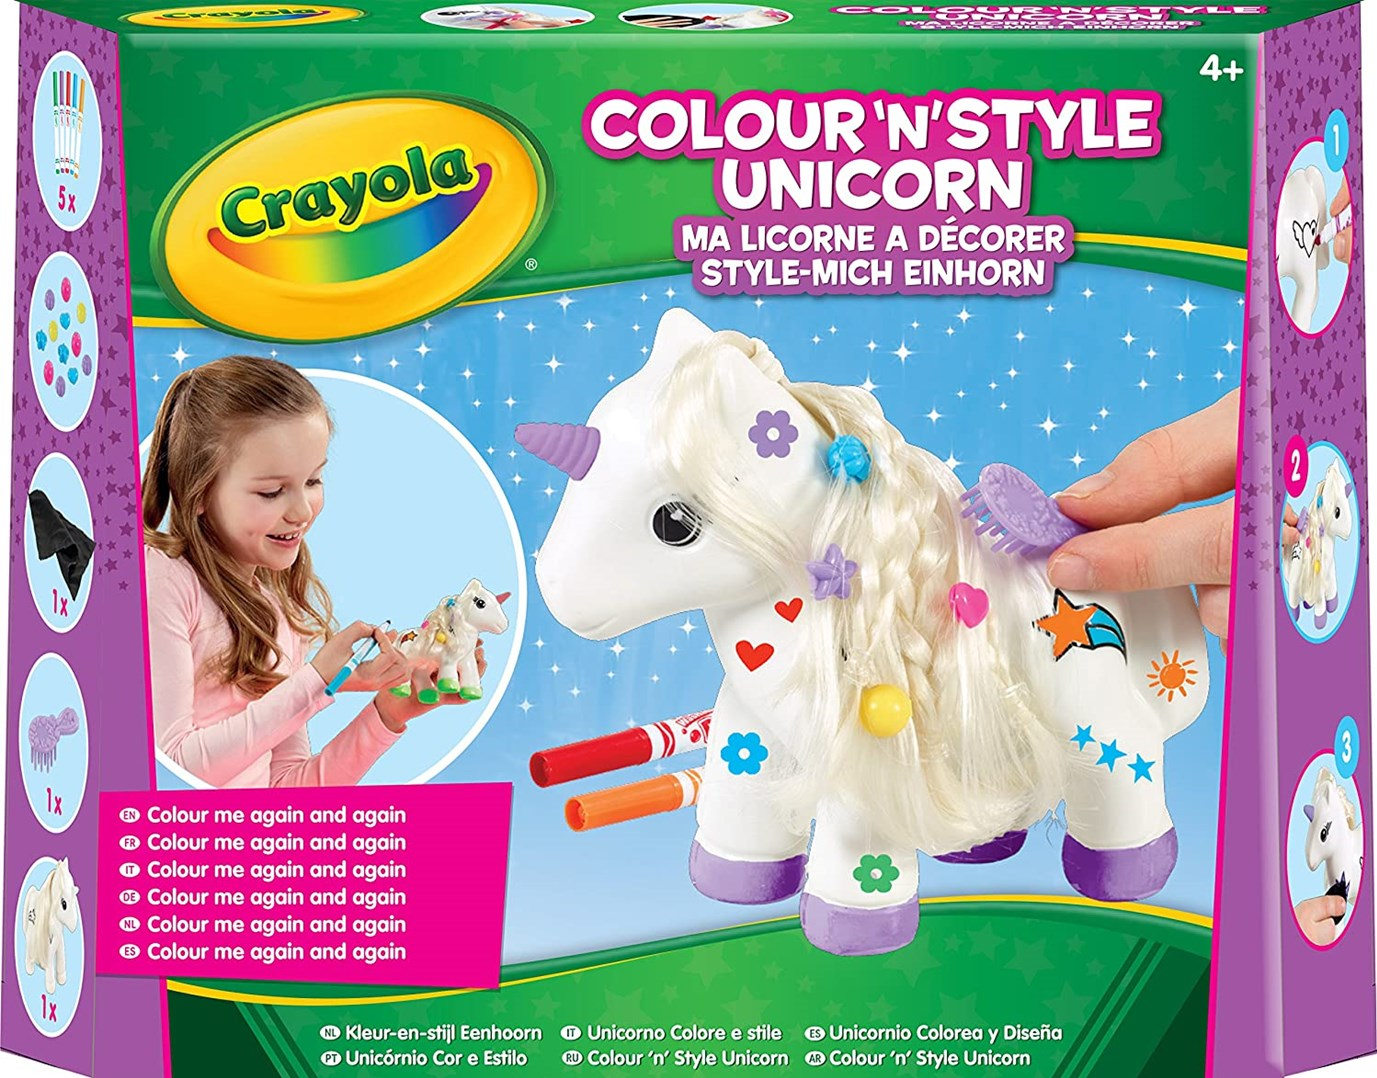 Crayola, 93020, Unicorn craft kit, sada jednorožec s fixami, 8 ks